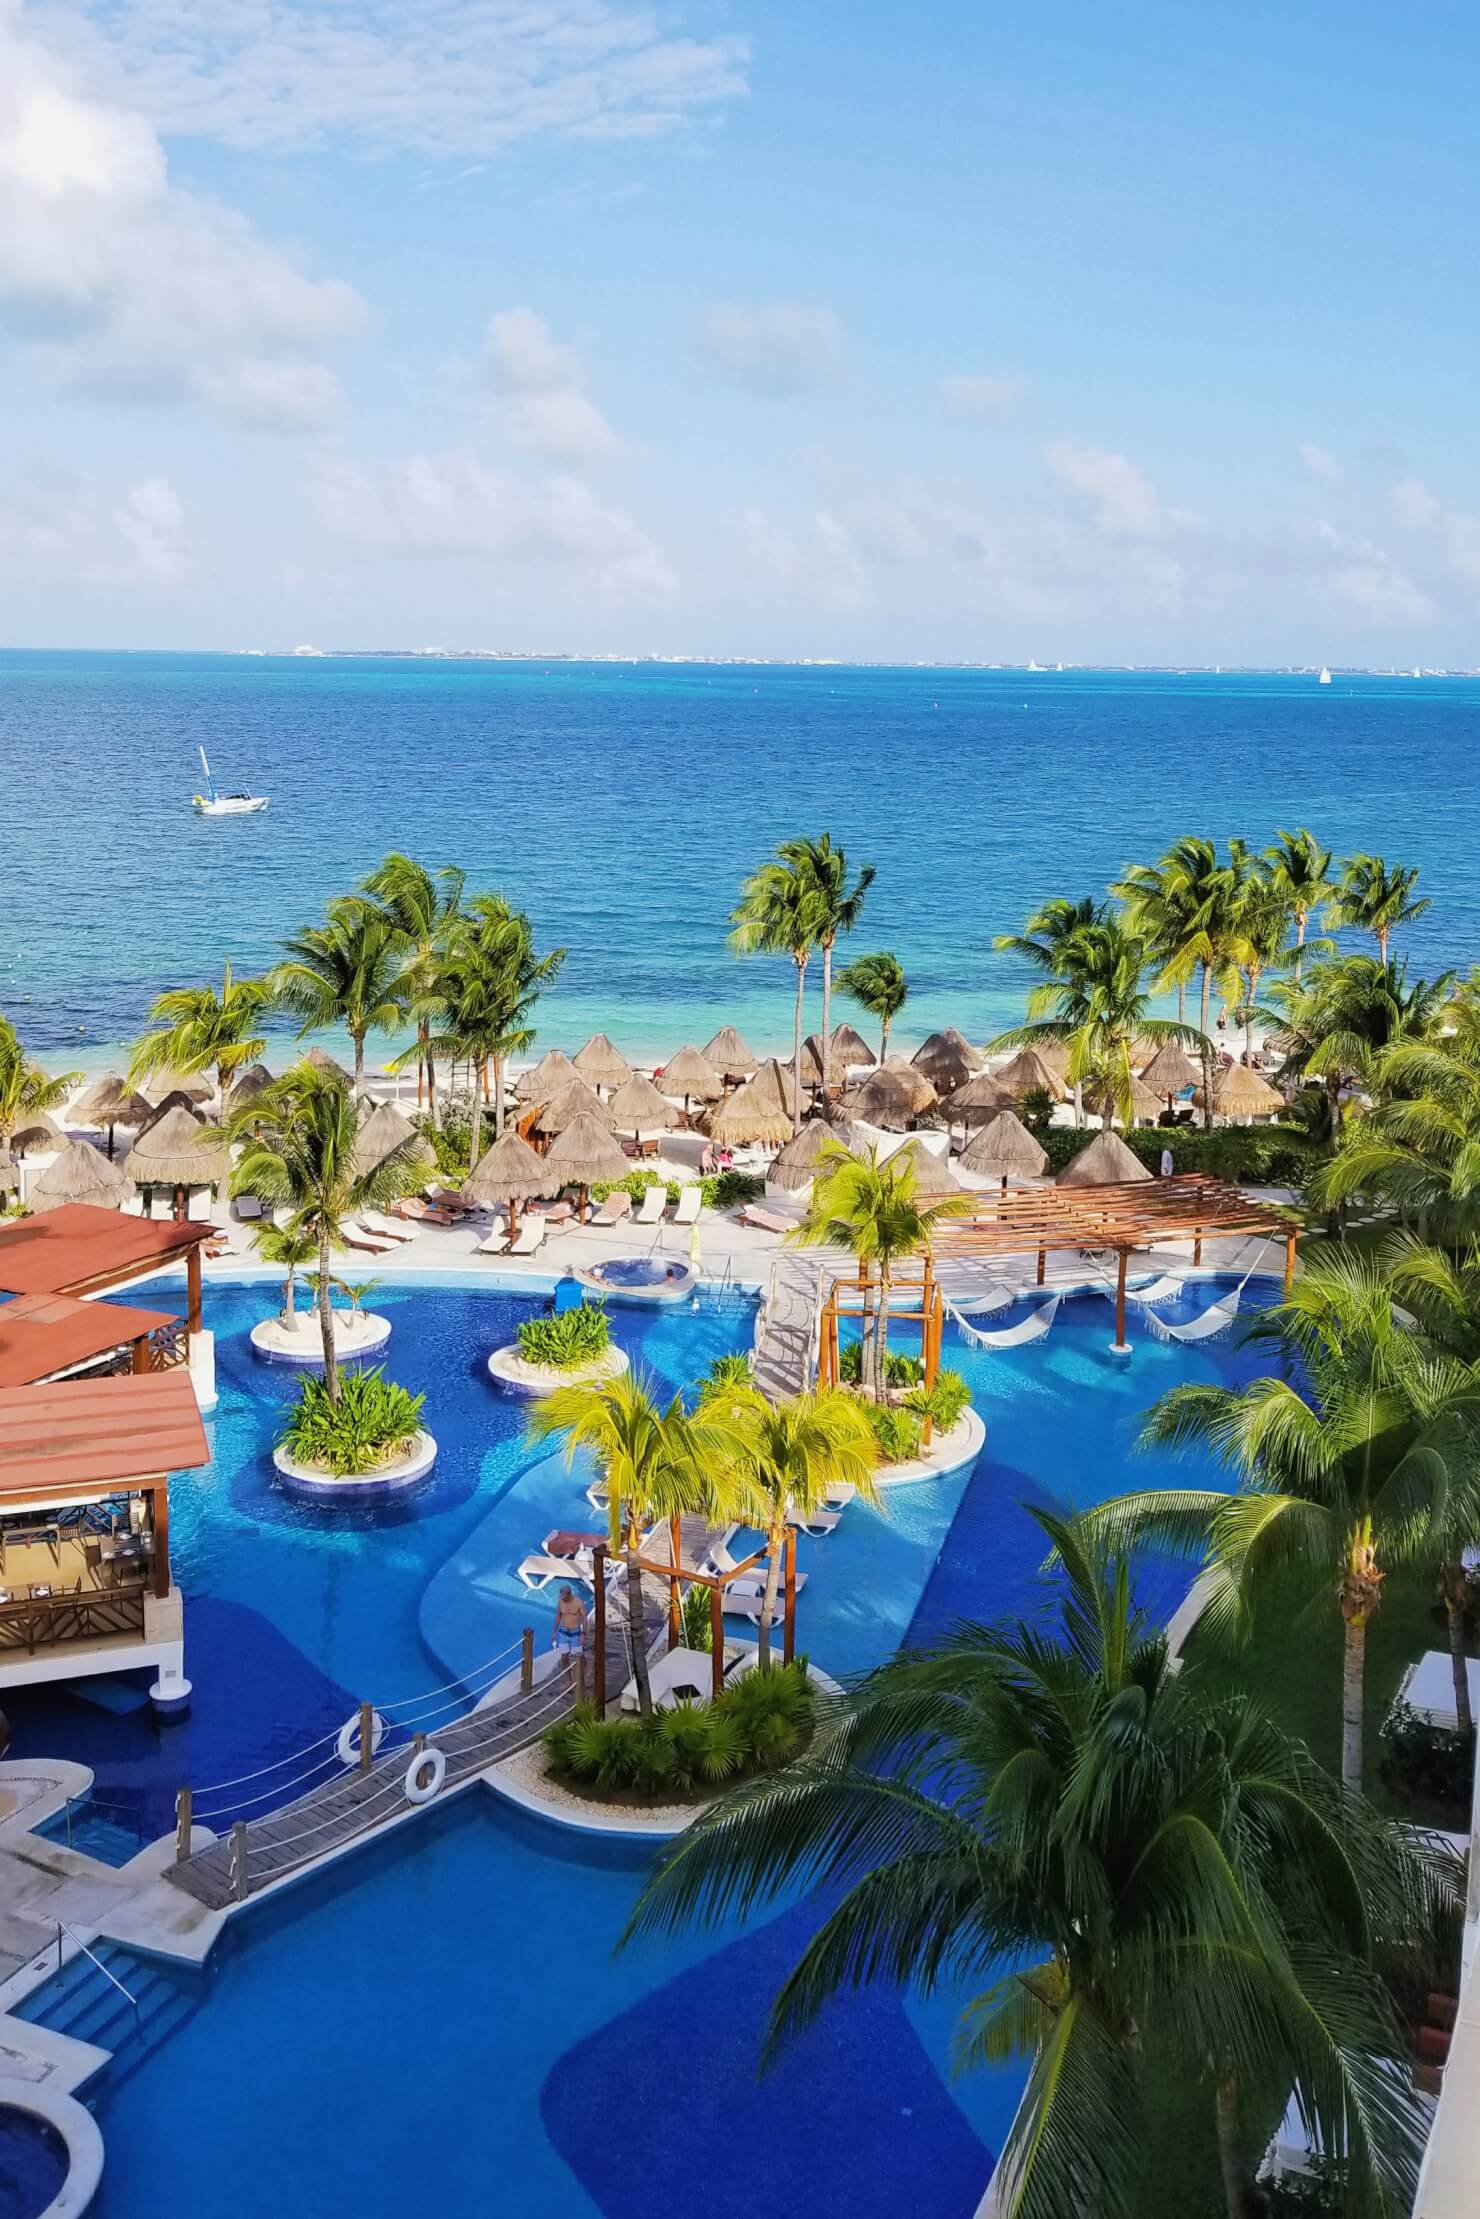 Our Mexico Vacation - Excellence Playa Mujeres